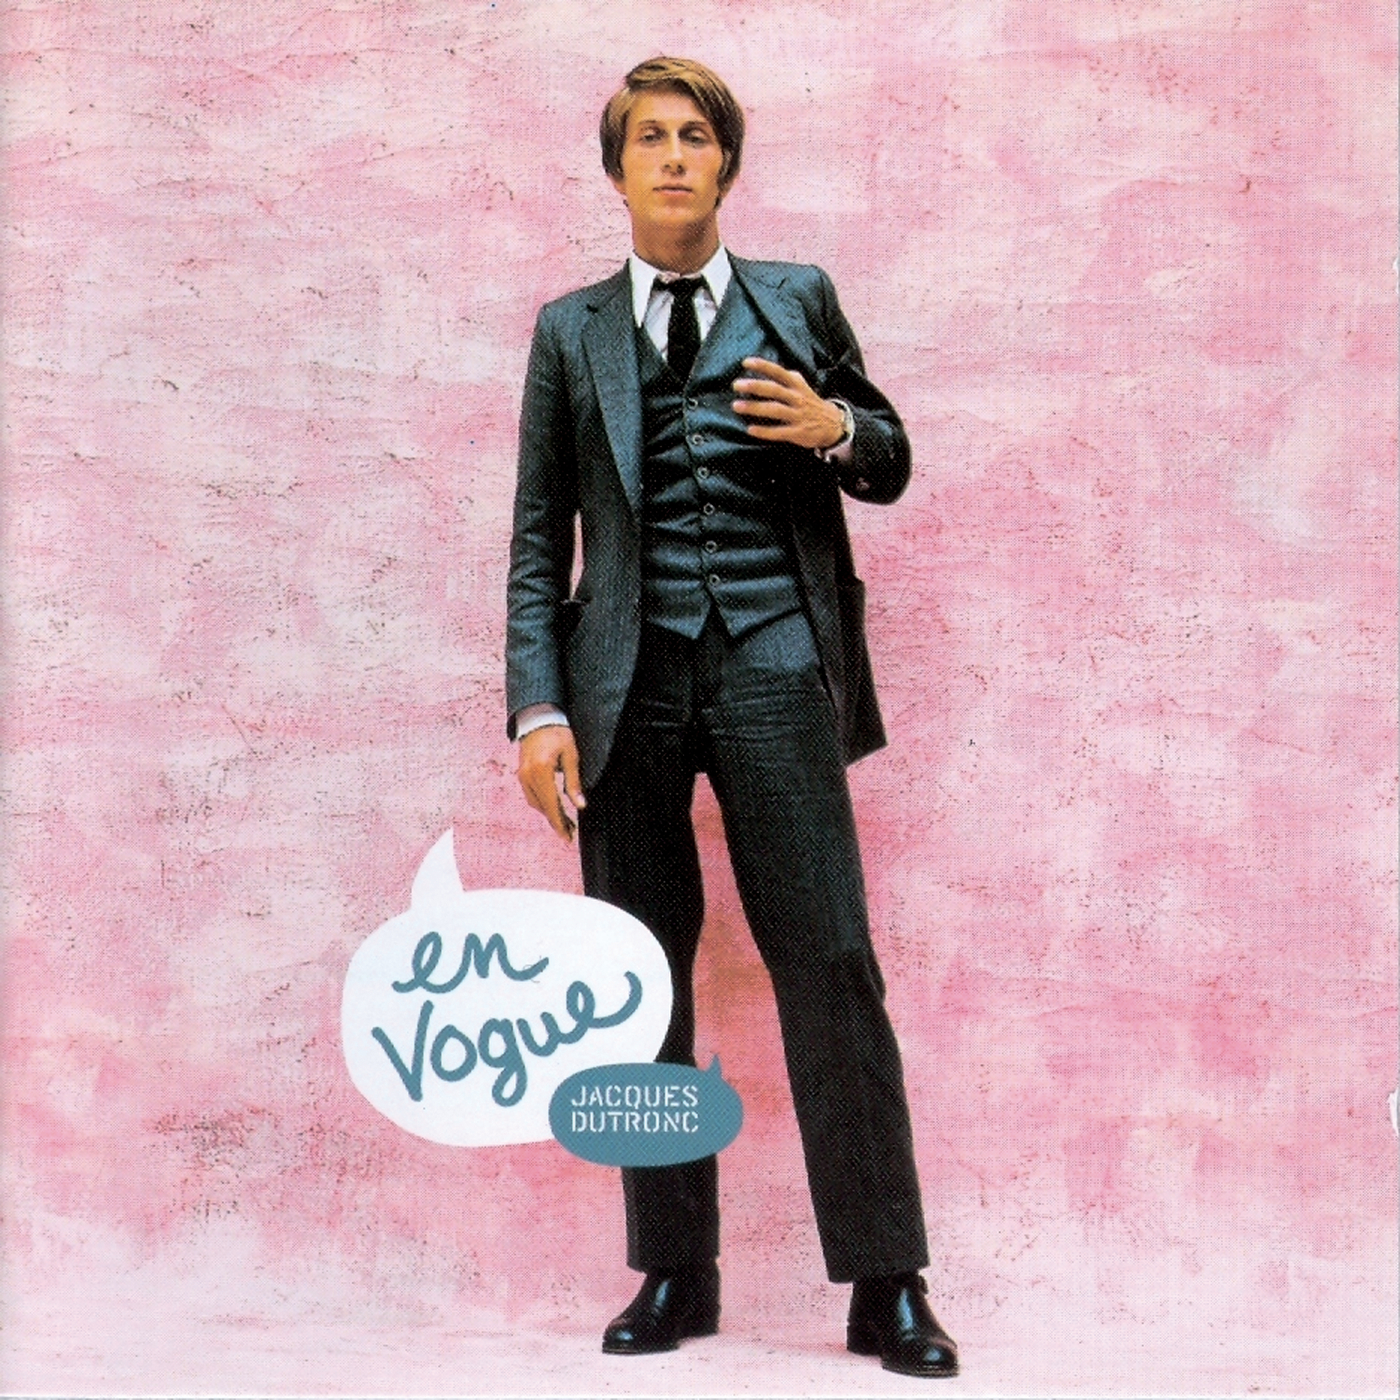 En Vogue - Jacques Dutronc